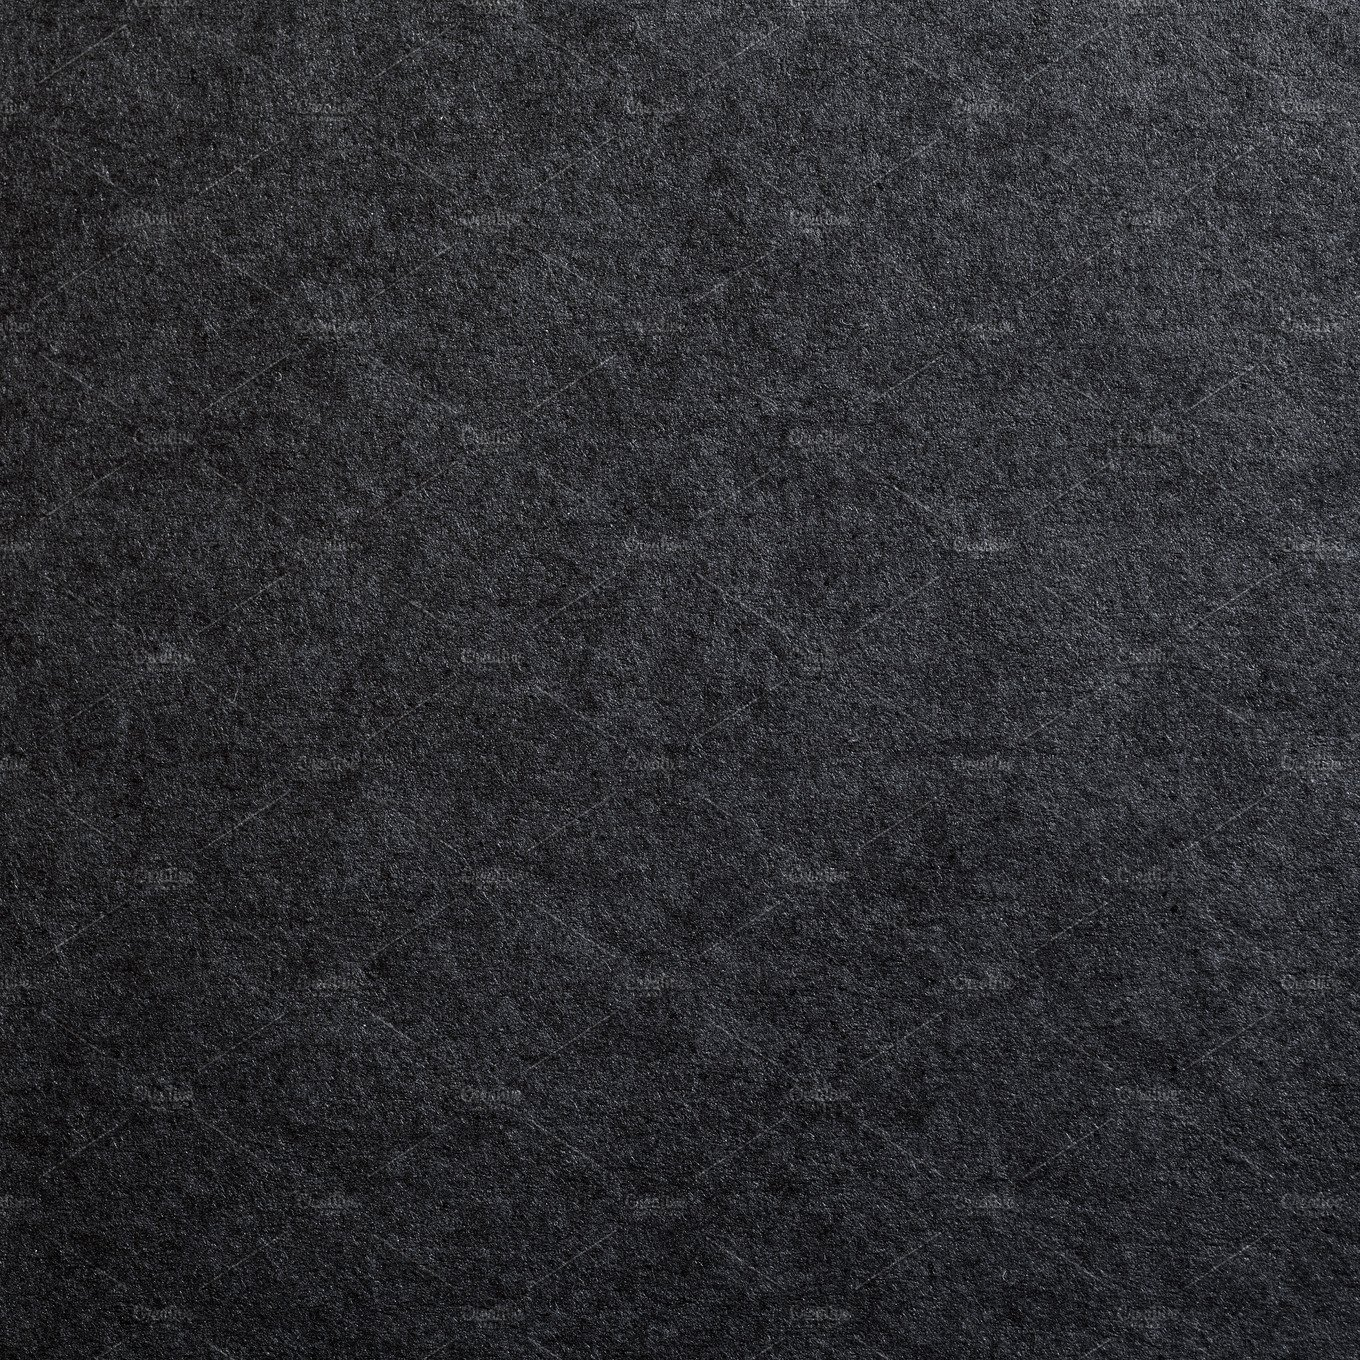 Black paper texture for background ~ Abstract Photos ~ Creative Market